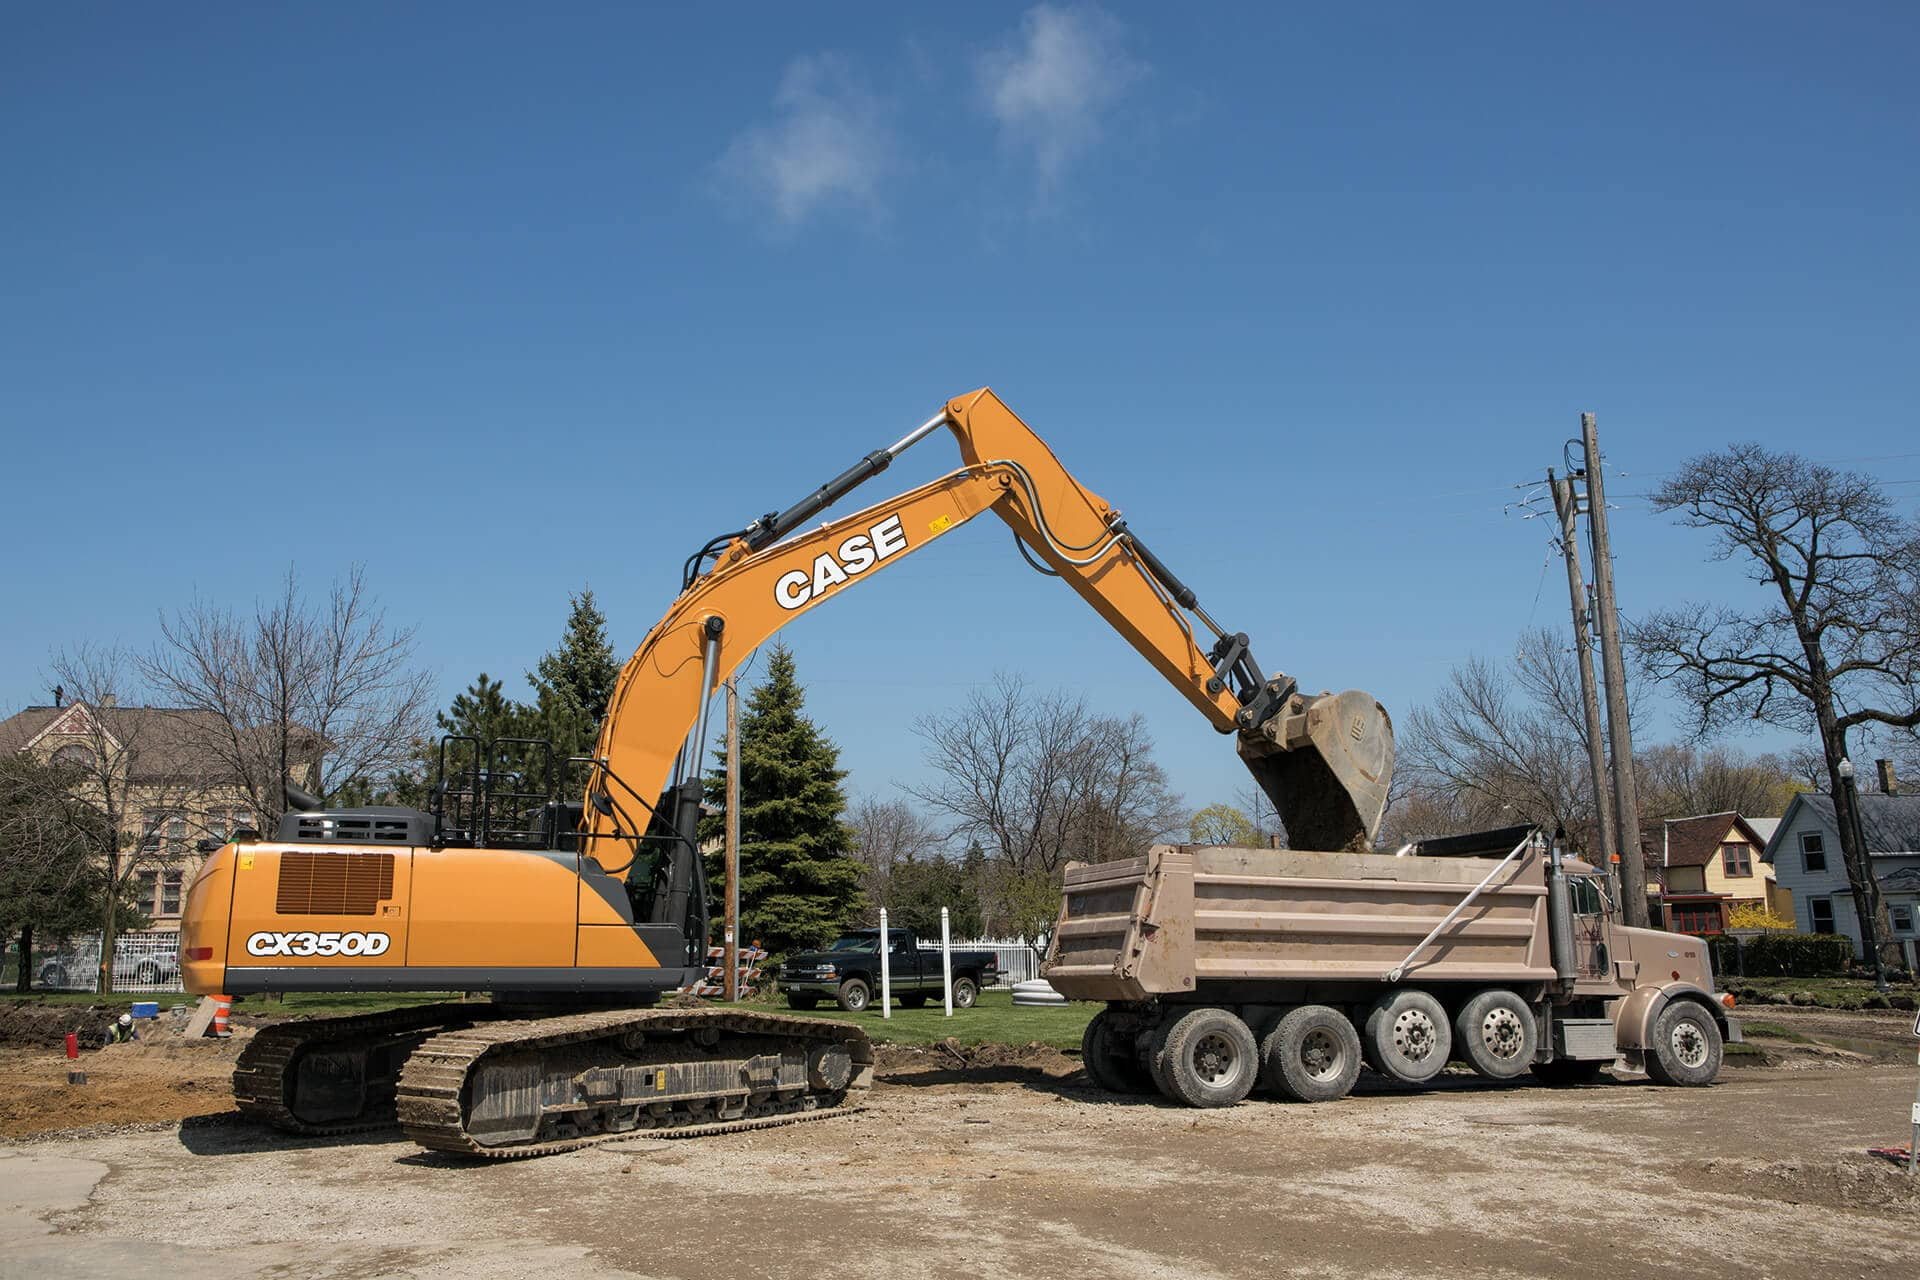 CASE CX350D Excavator | CASE Construction Equipment